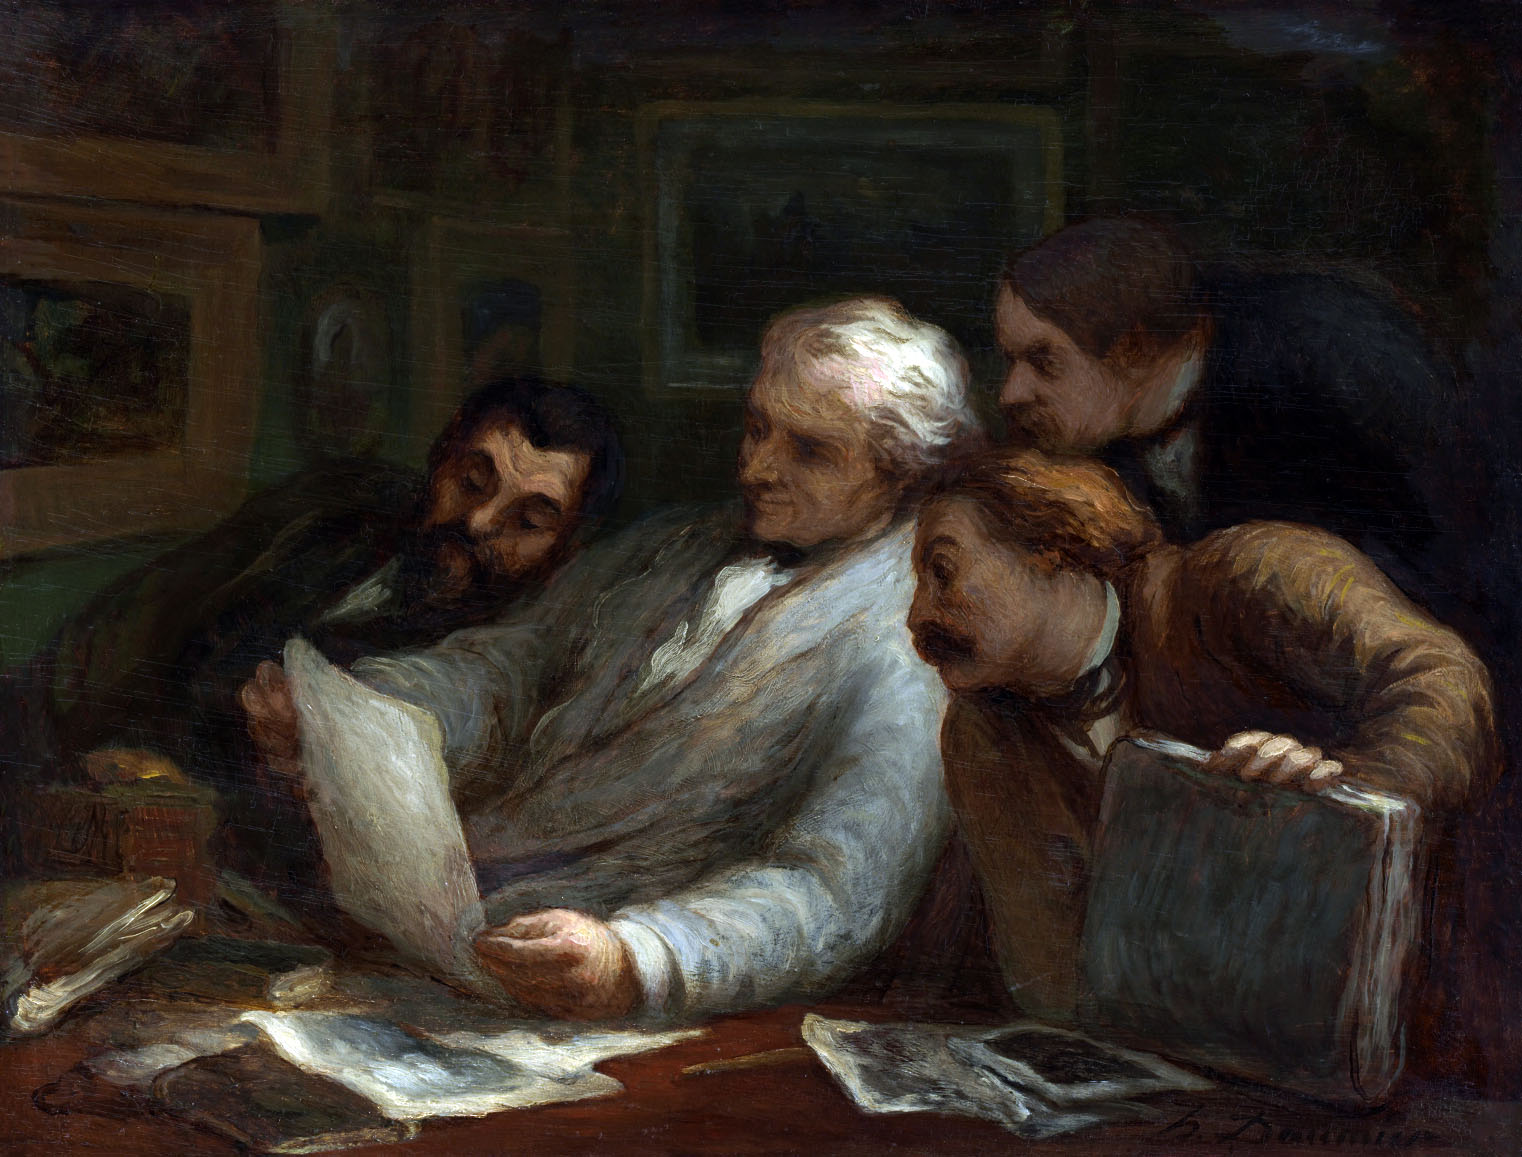 Honoré Daumier´s  The Print Collectors  shows the frenzy, passion, intense desire, mixed with jealousy and competitiveness, of a group of nineteenth-century print collectors.